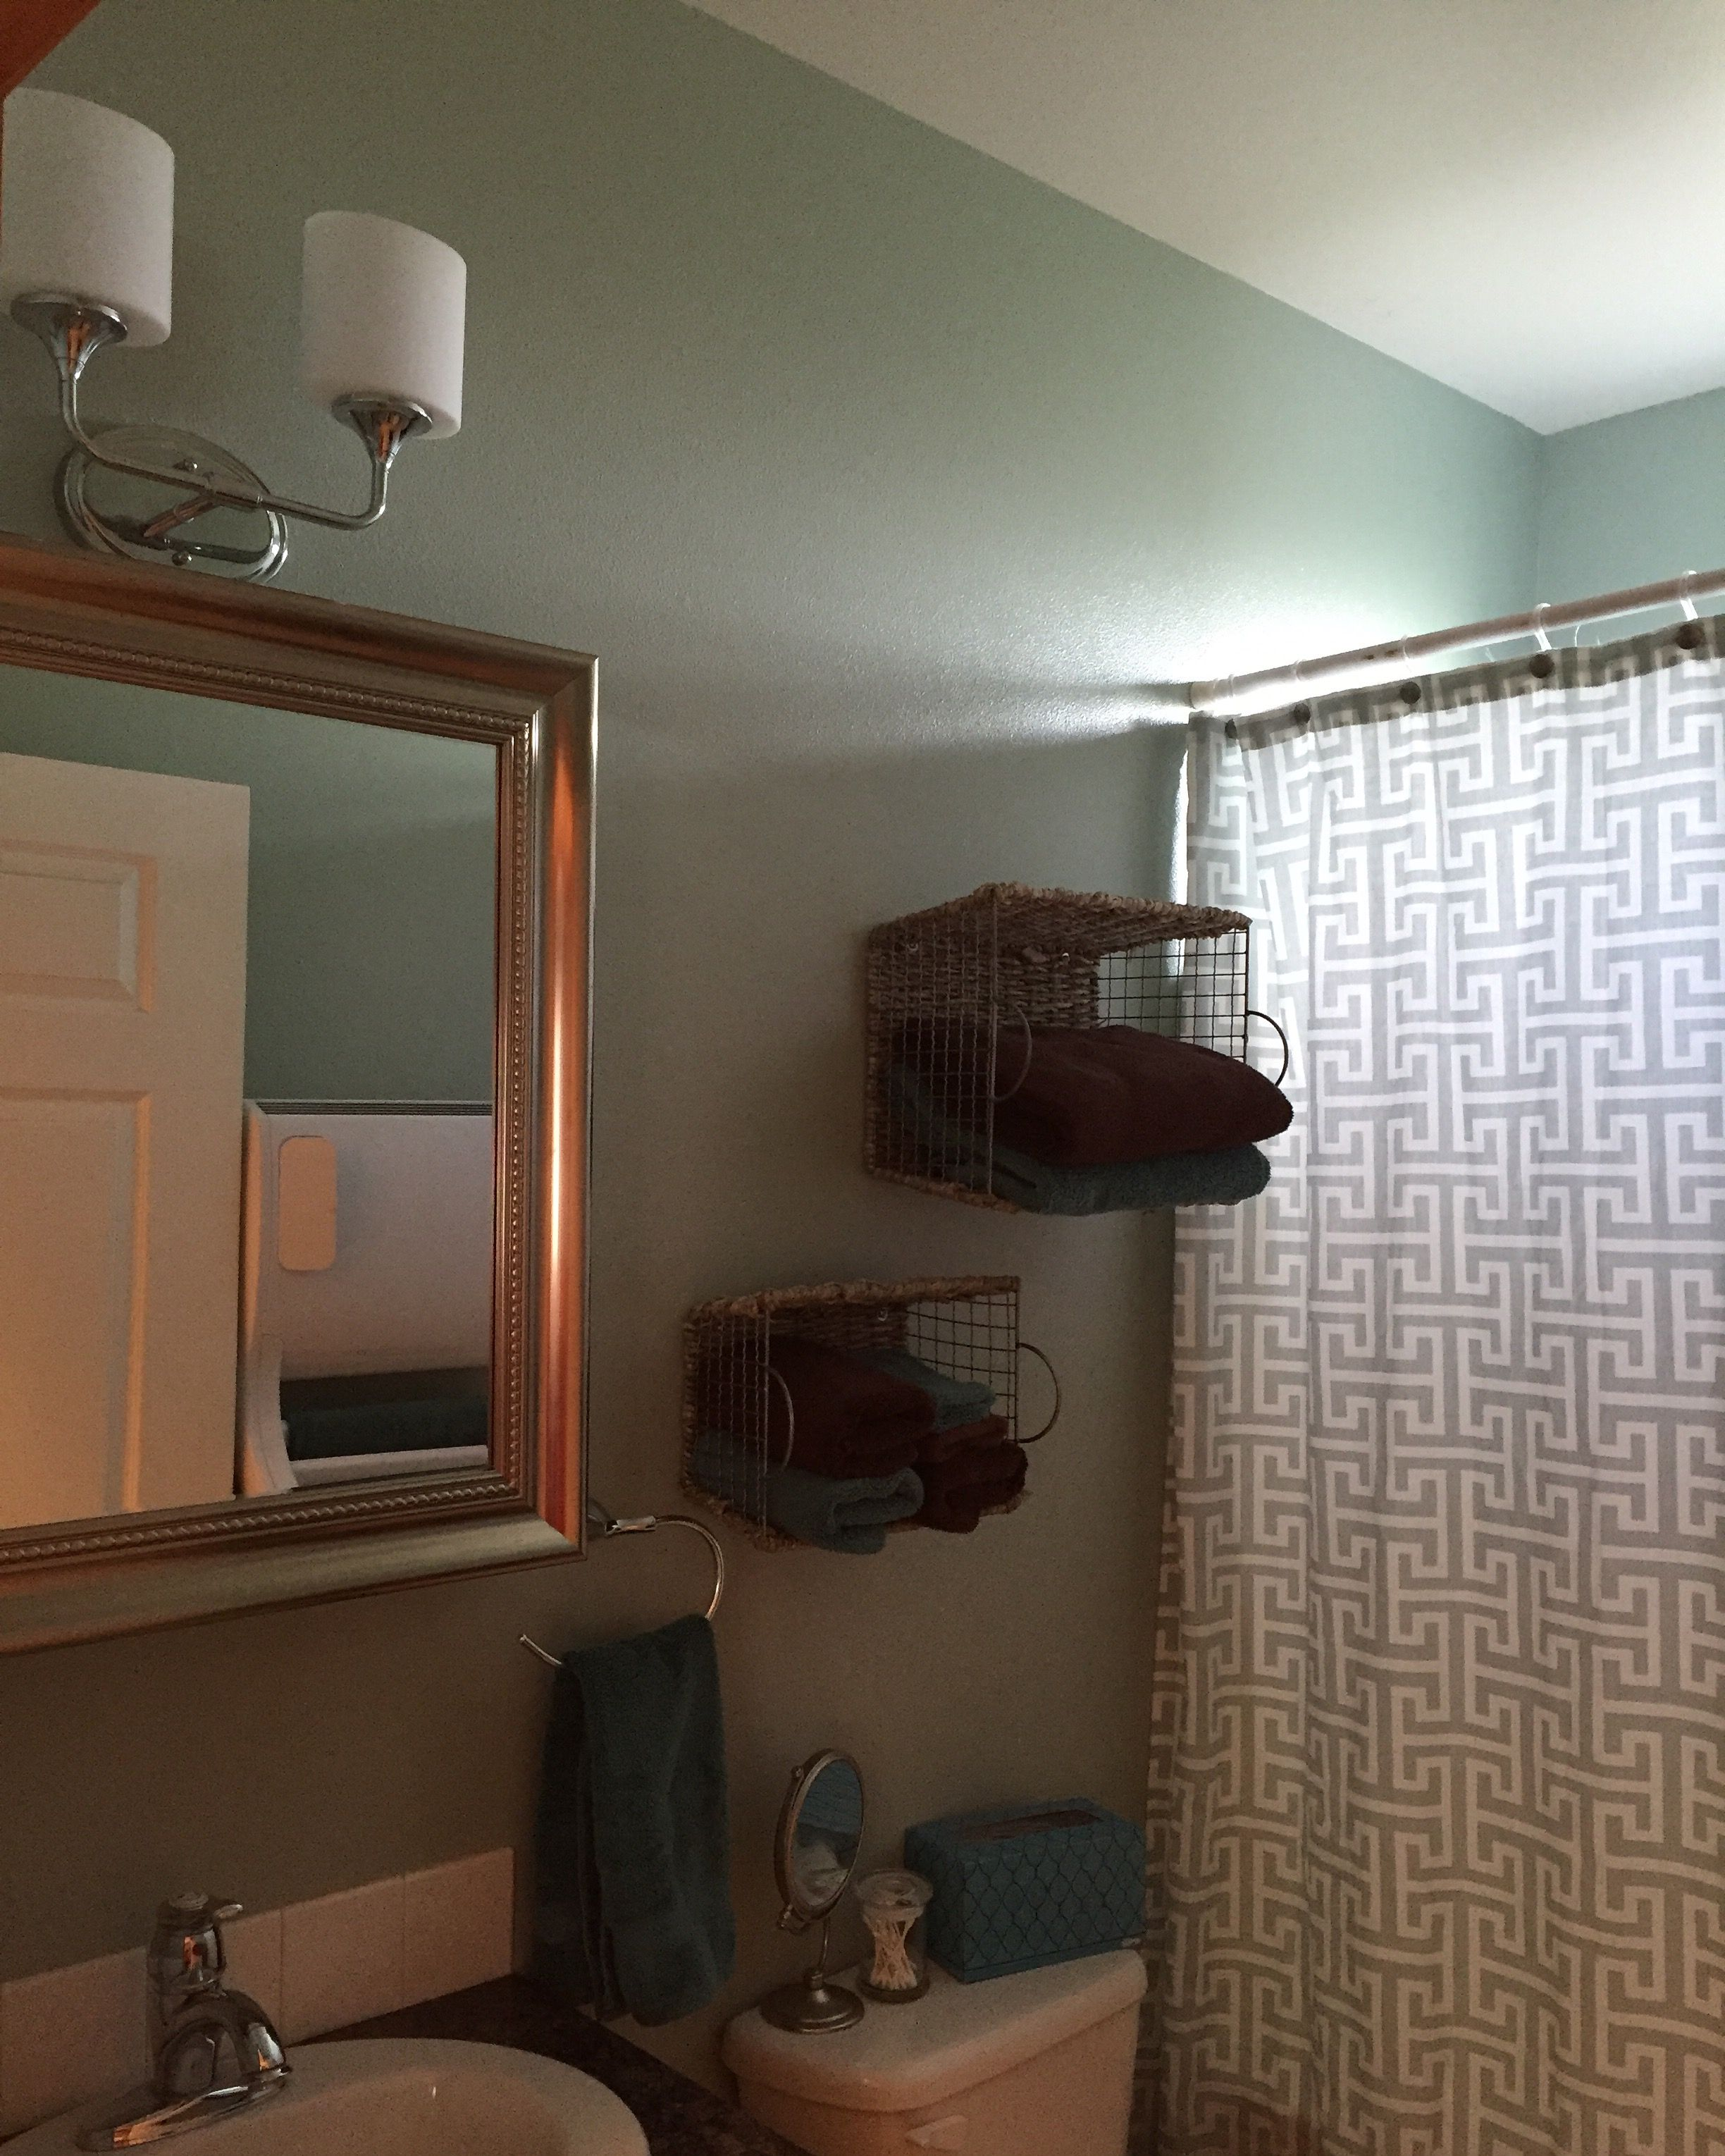 Our Small Guest Bathroom. We Hung A Medicine Cabinet For Extra Storage,  Baskets For